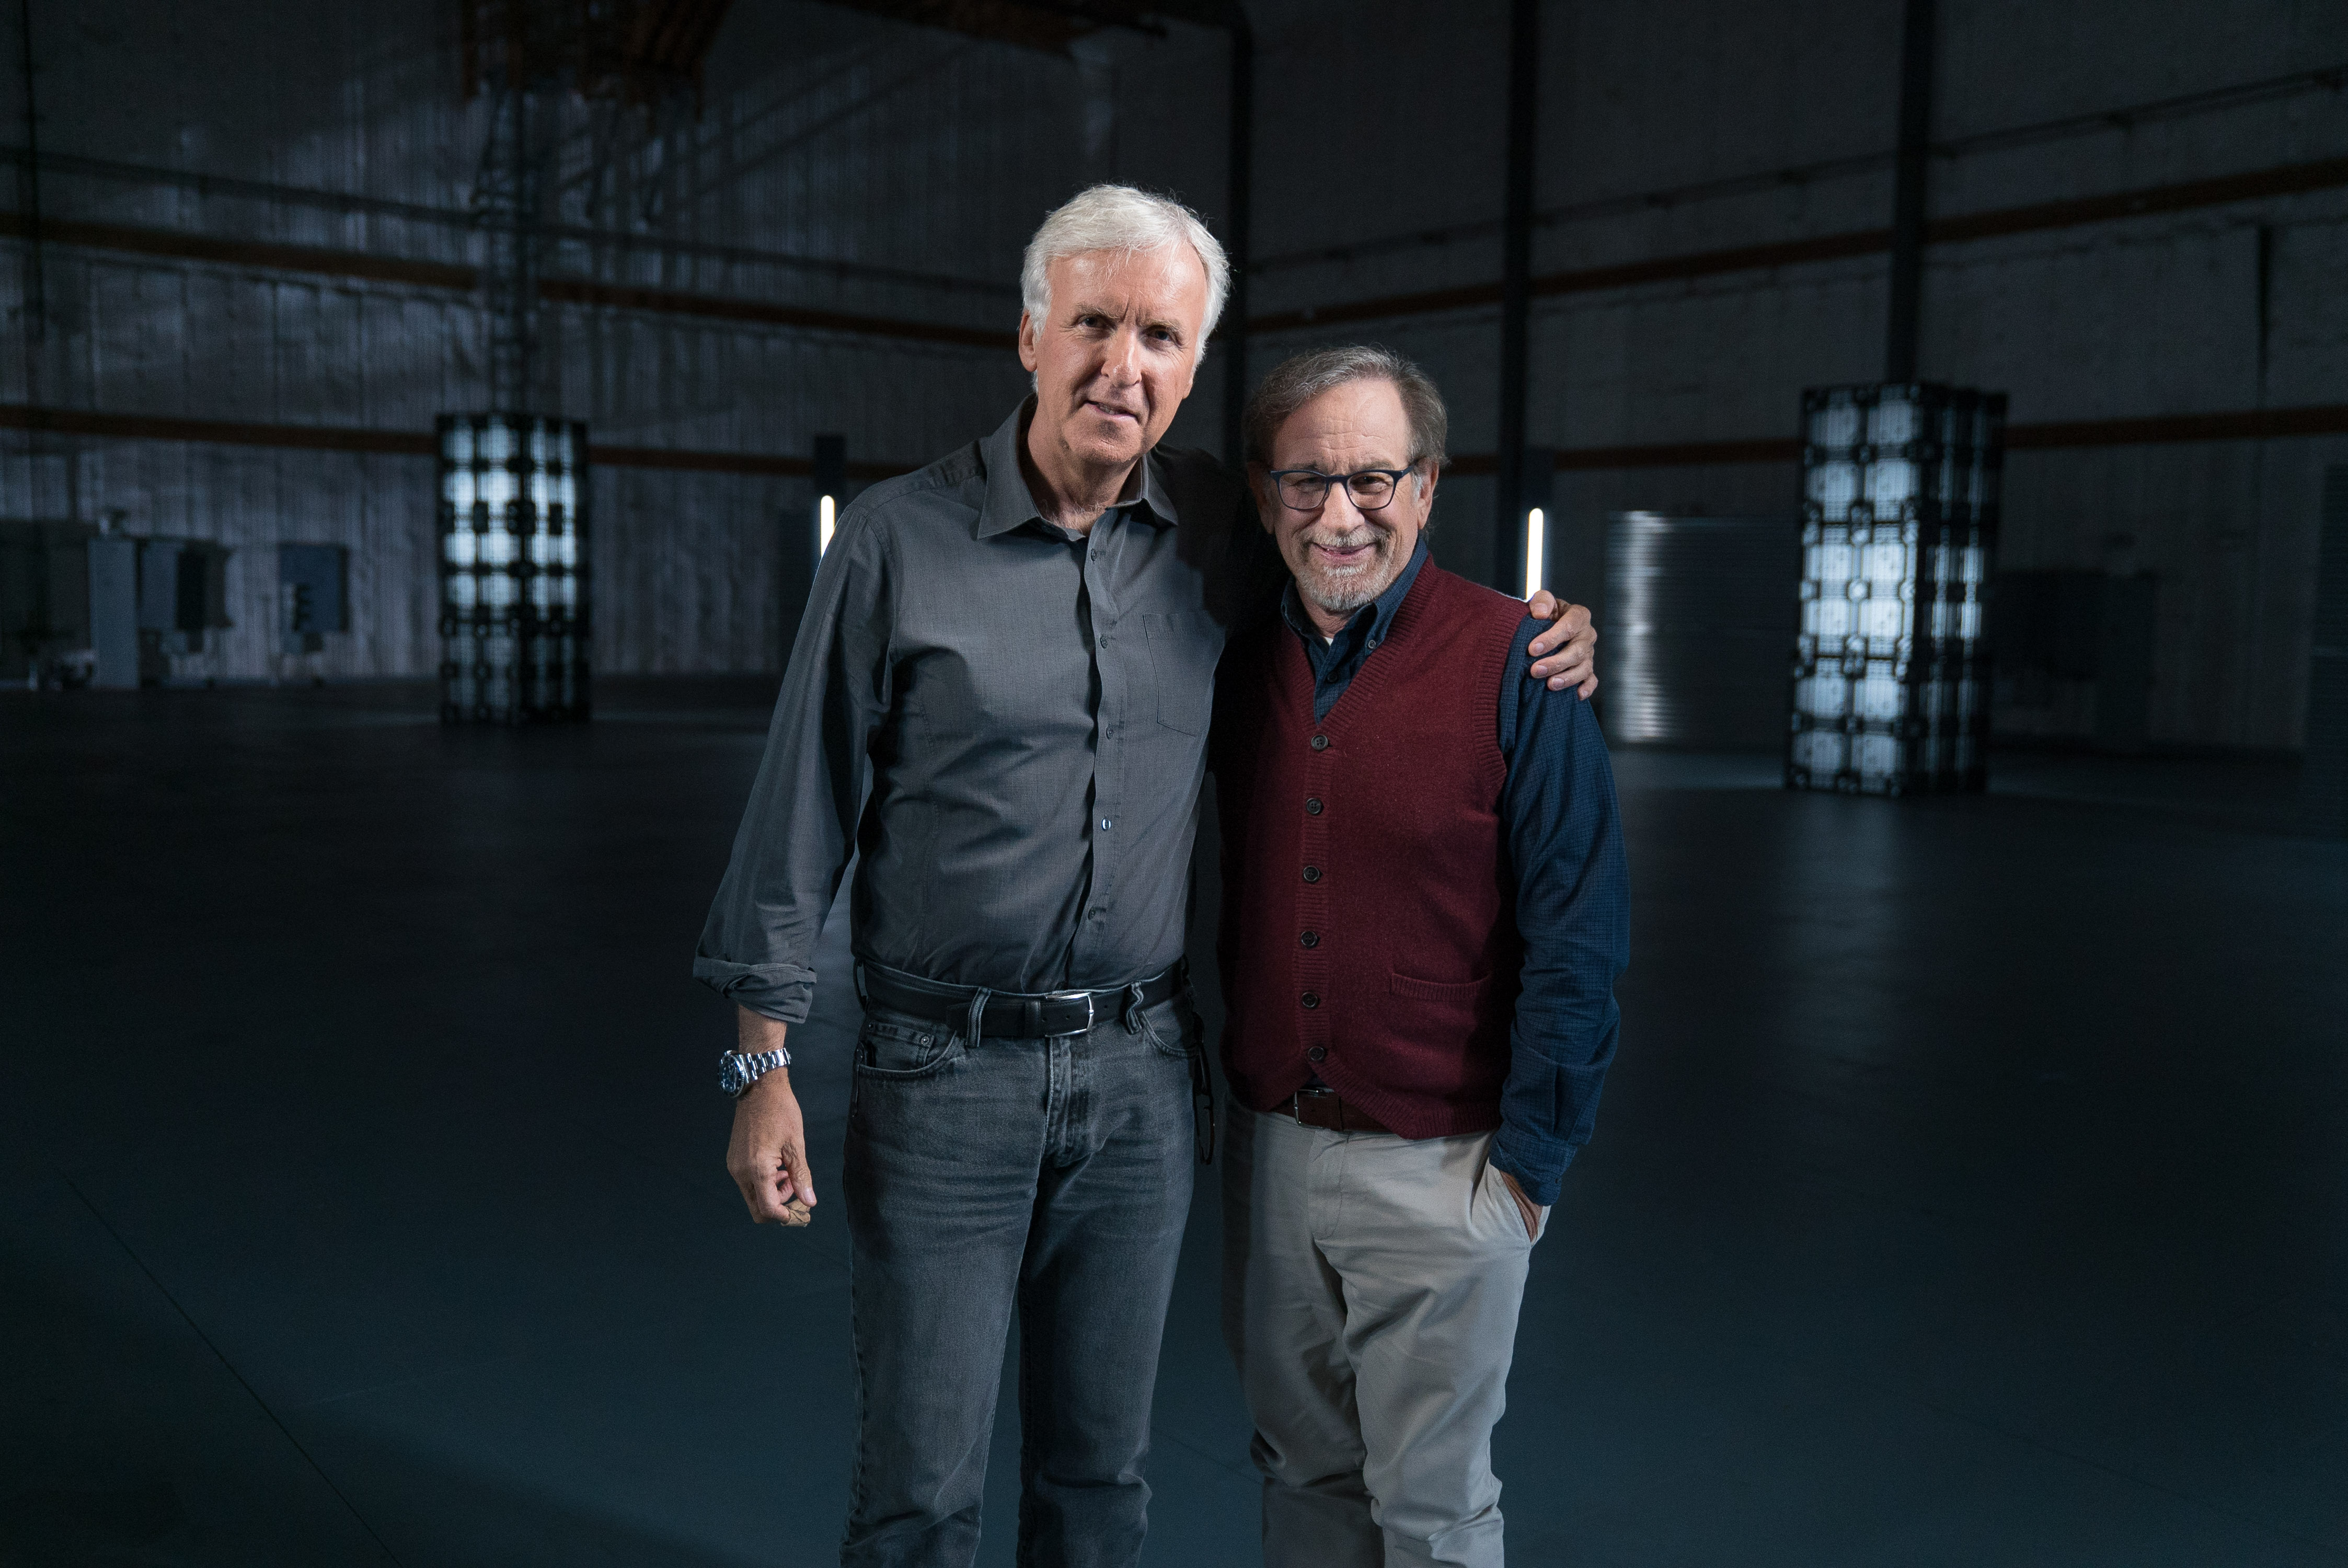 Steven Spielberg reveals what films terrified him as a child in an interview with James Cameron